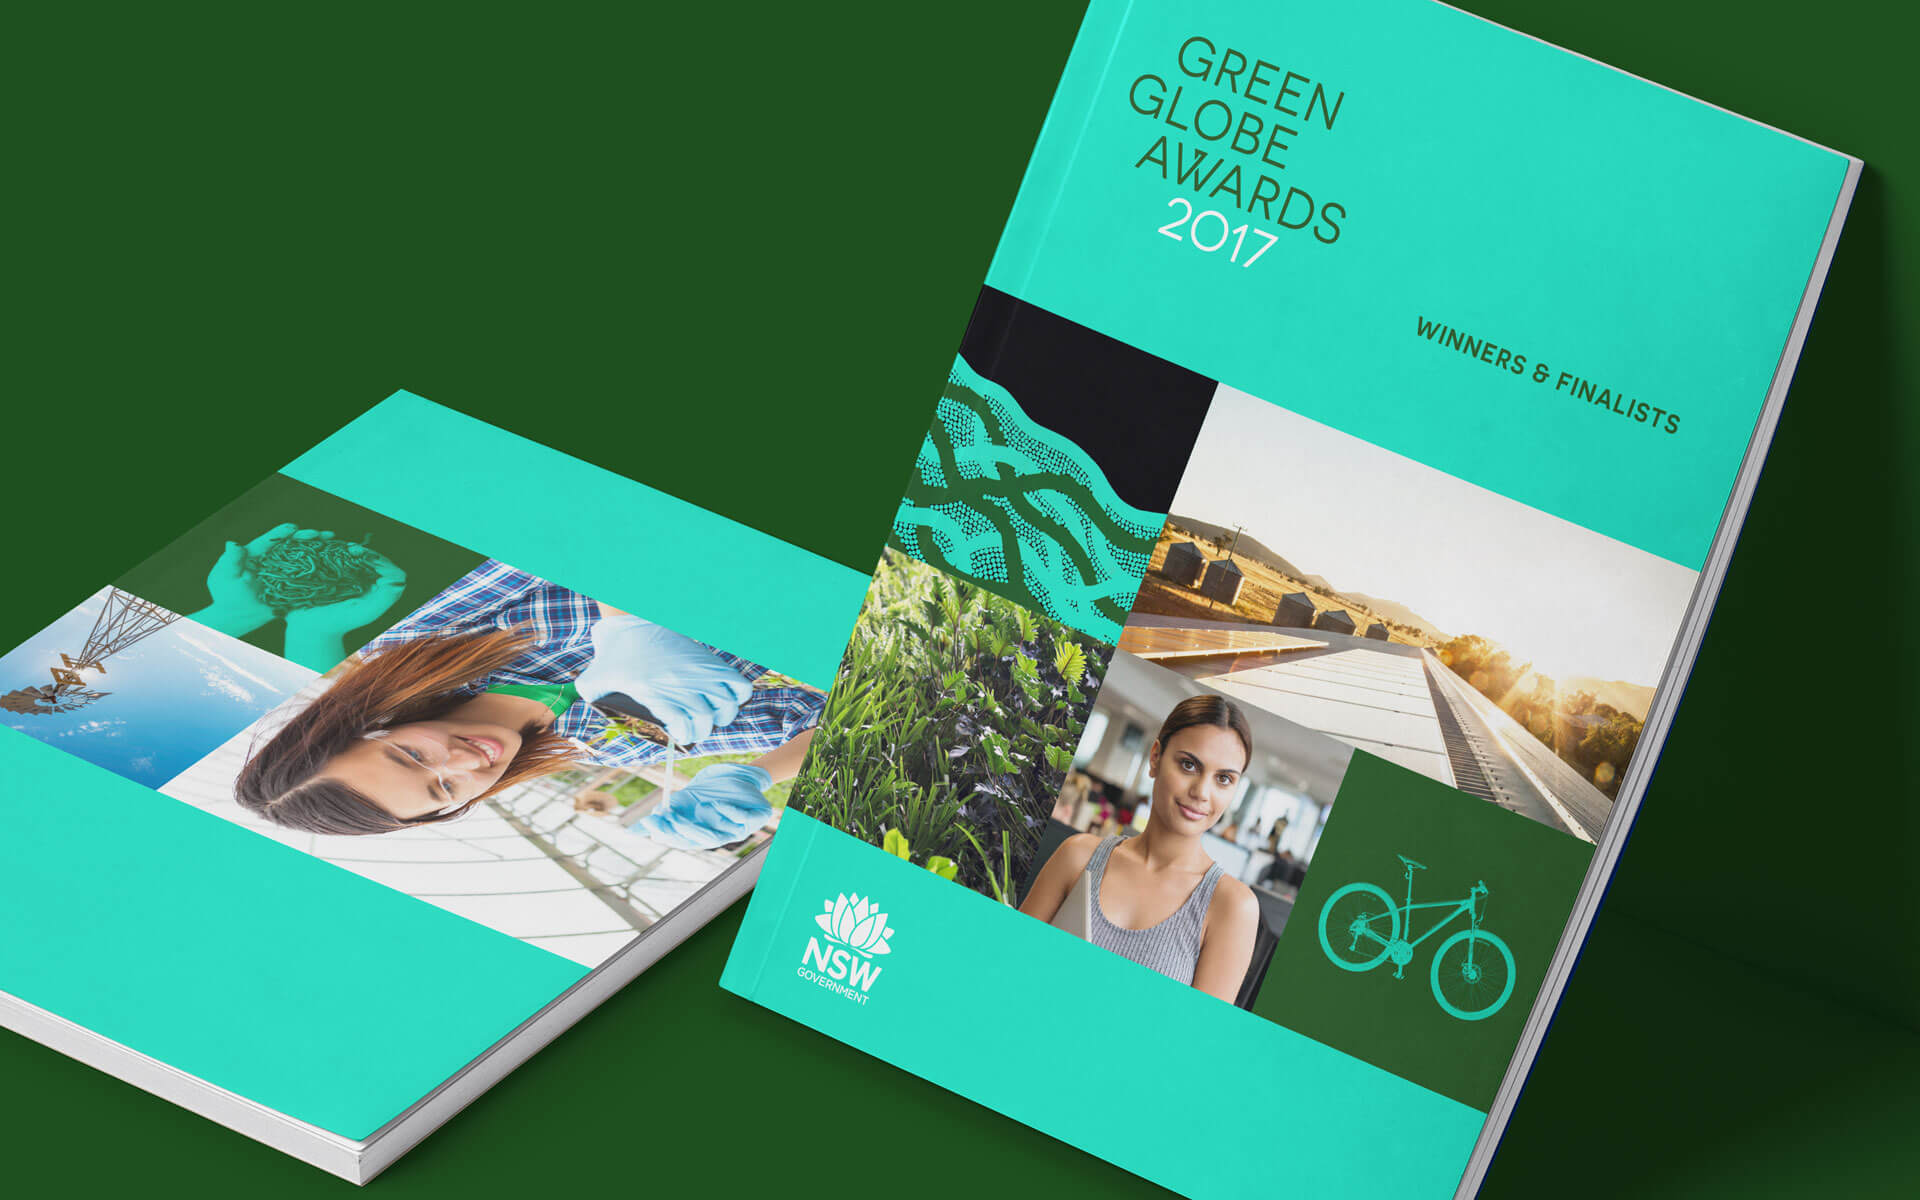 The Green Globe Awards rebrand, winners booklet design